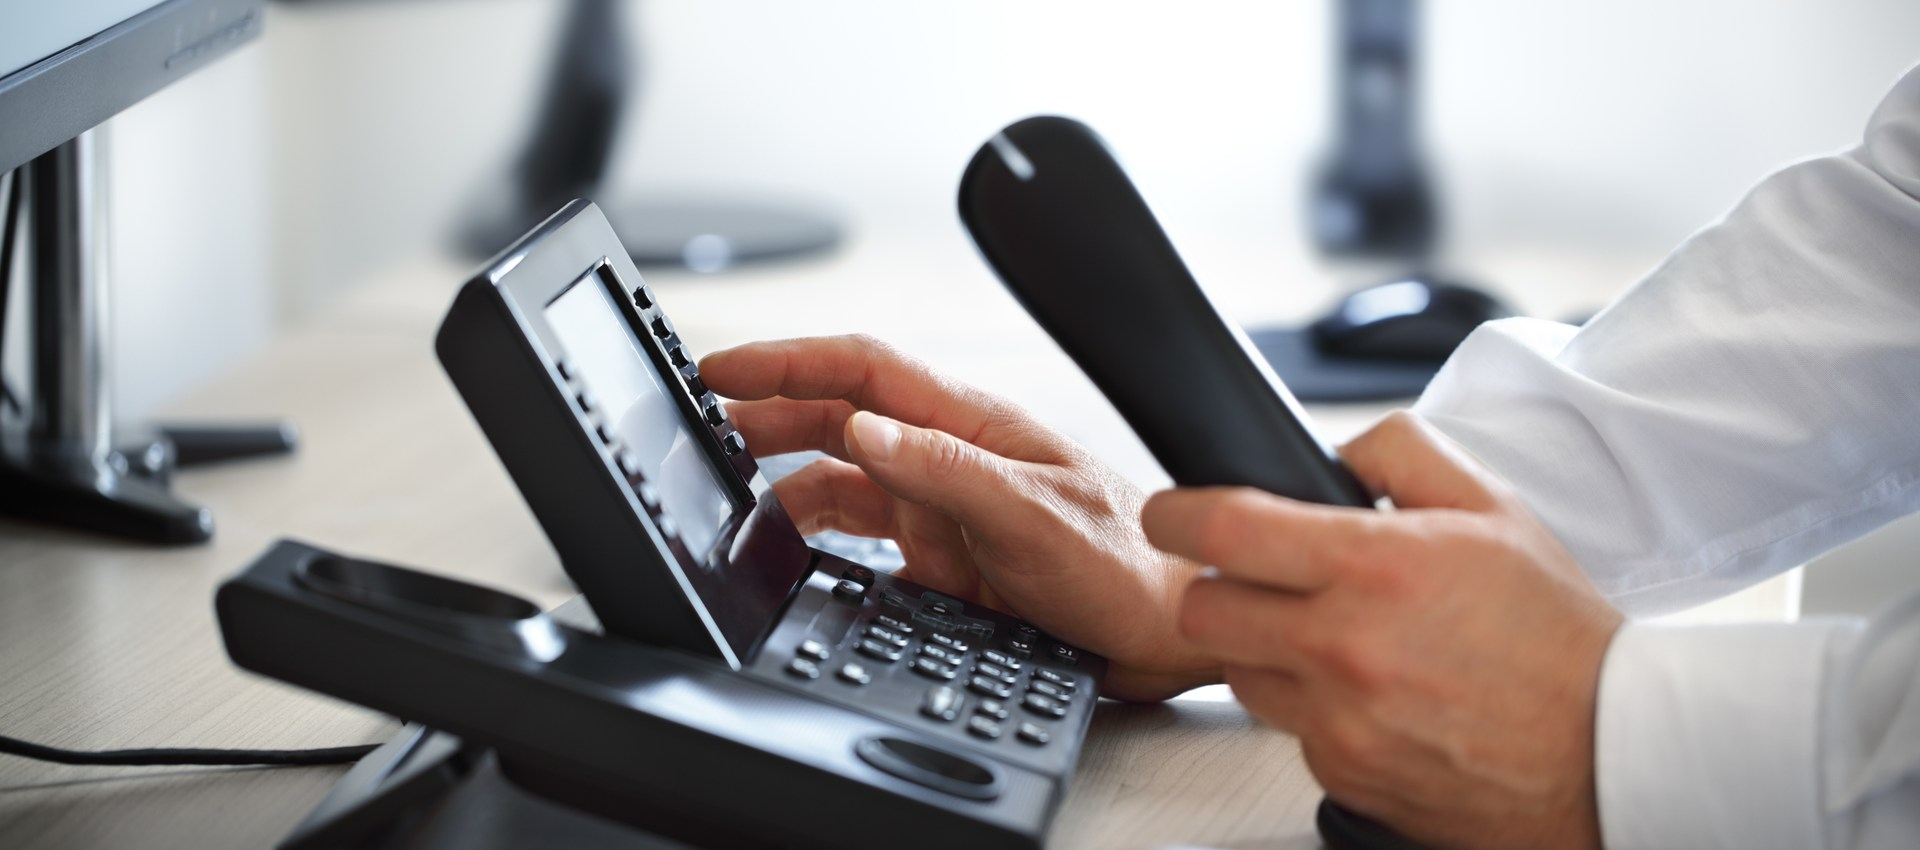 VoIP Advantages and Disadvantages – What to Know Before Purchasing VoIP